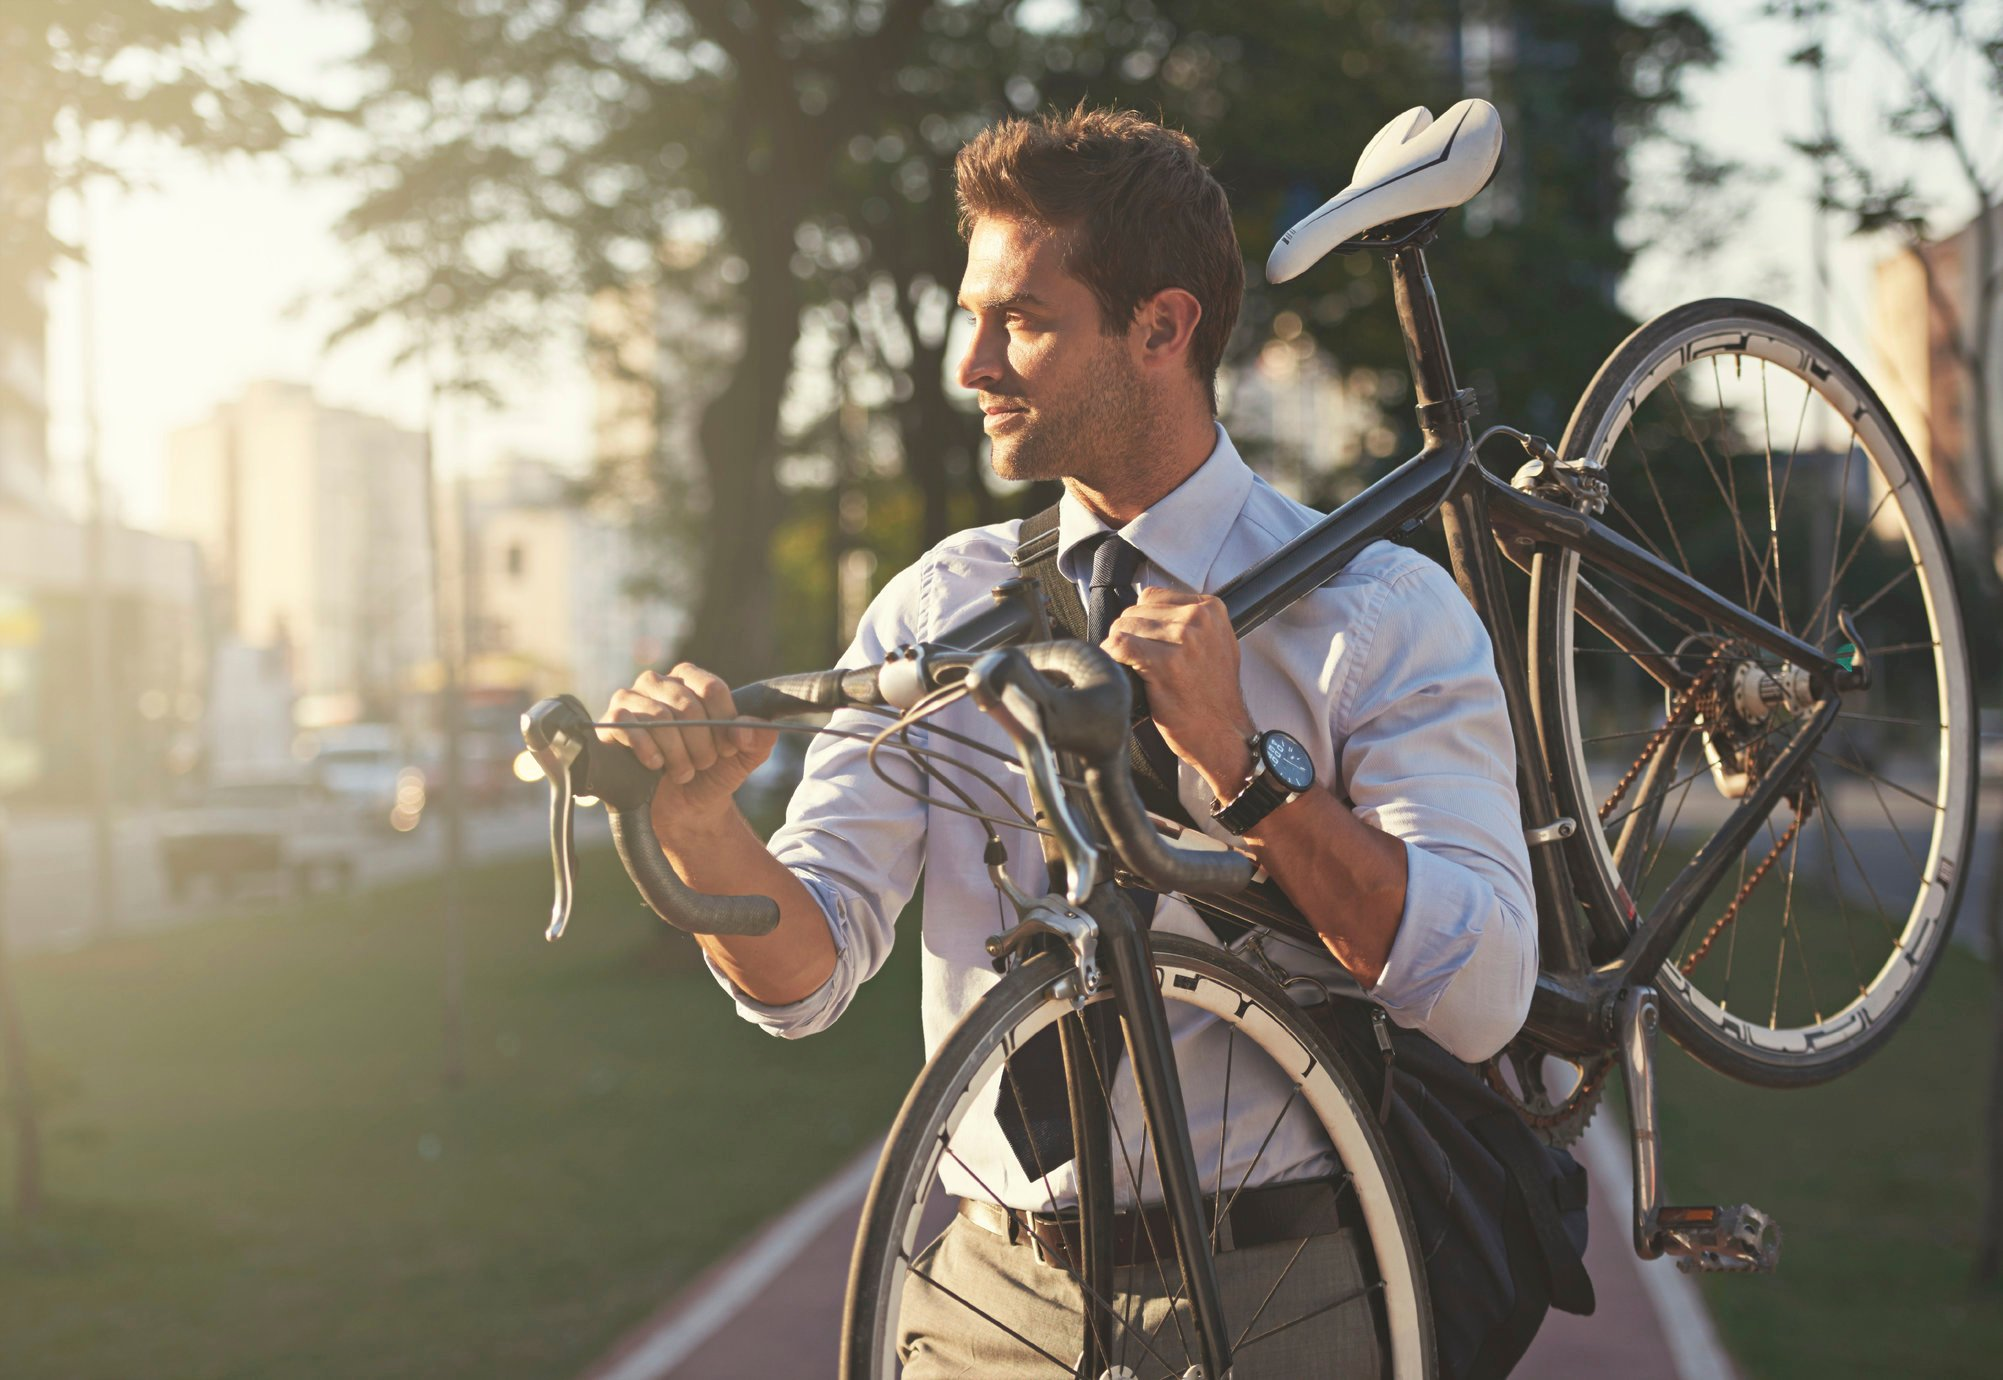 Just one in ten Brits cycle to work